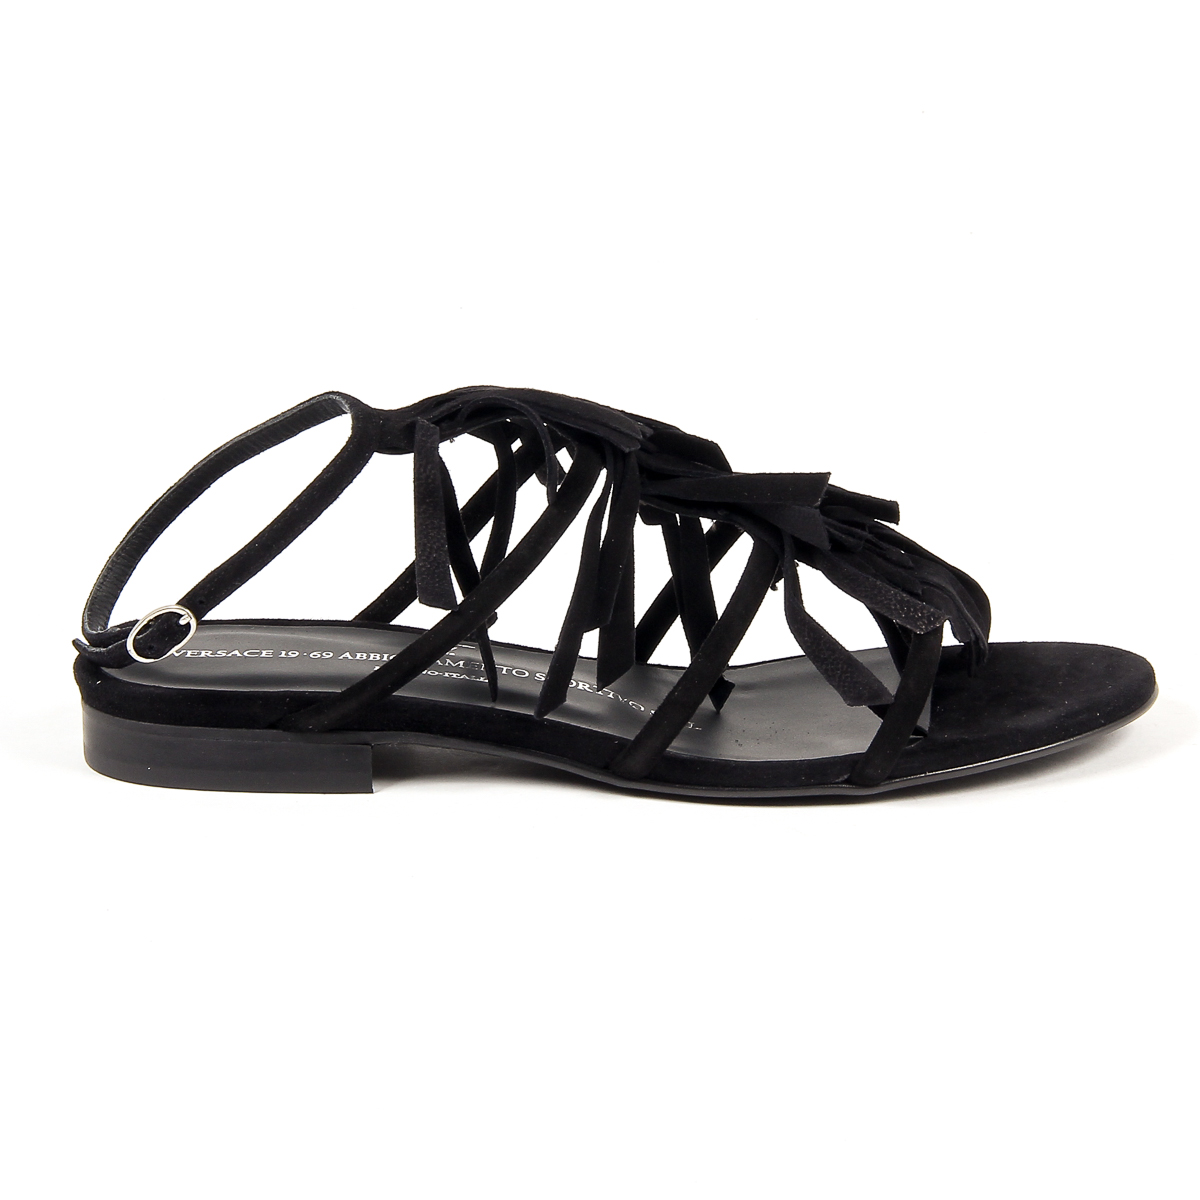 Primary image for V 1969 Italia Womens Flat Sandal Black RIA